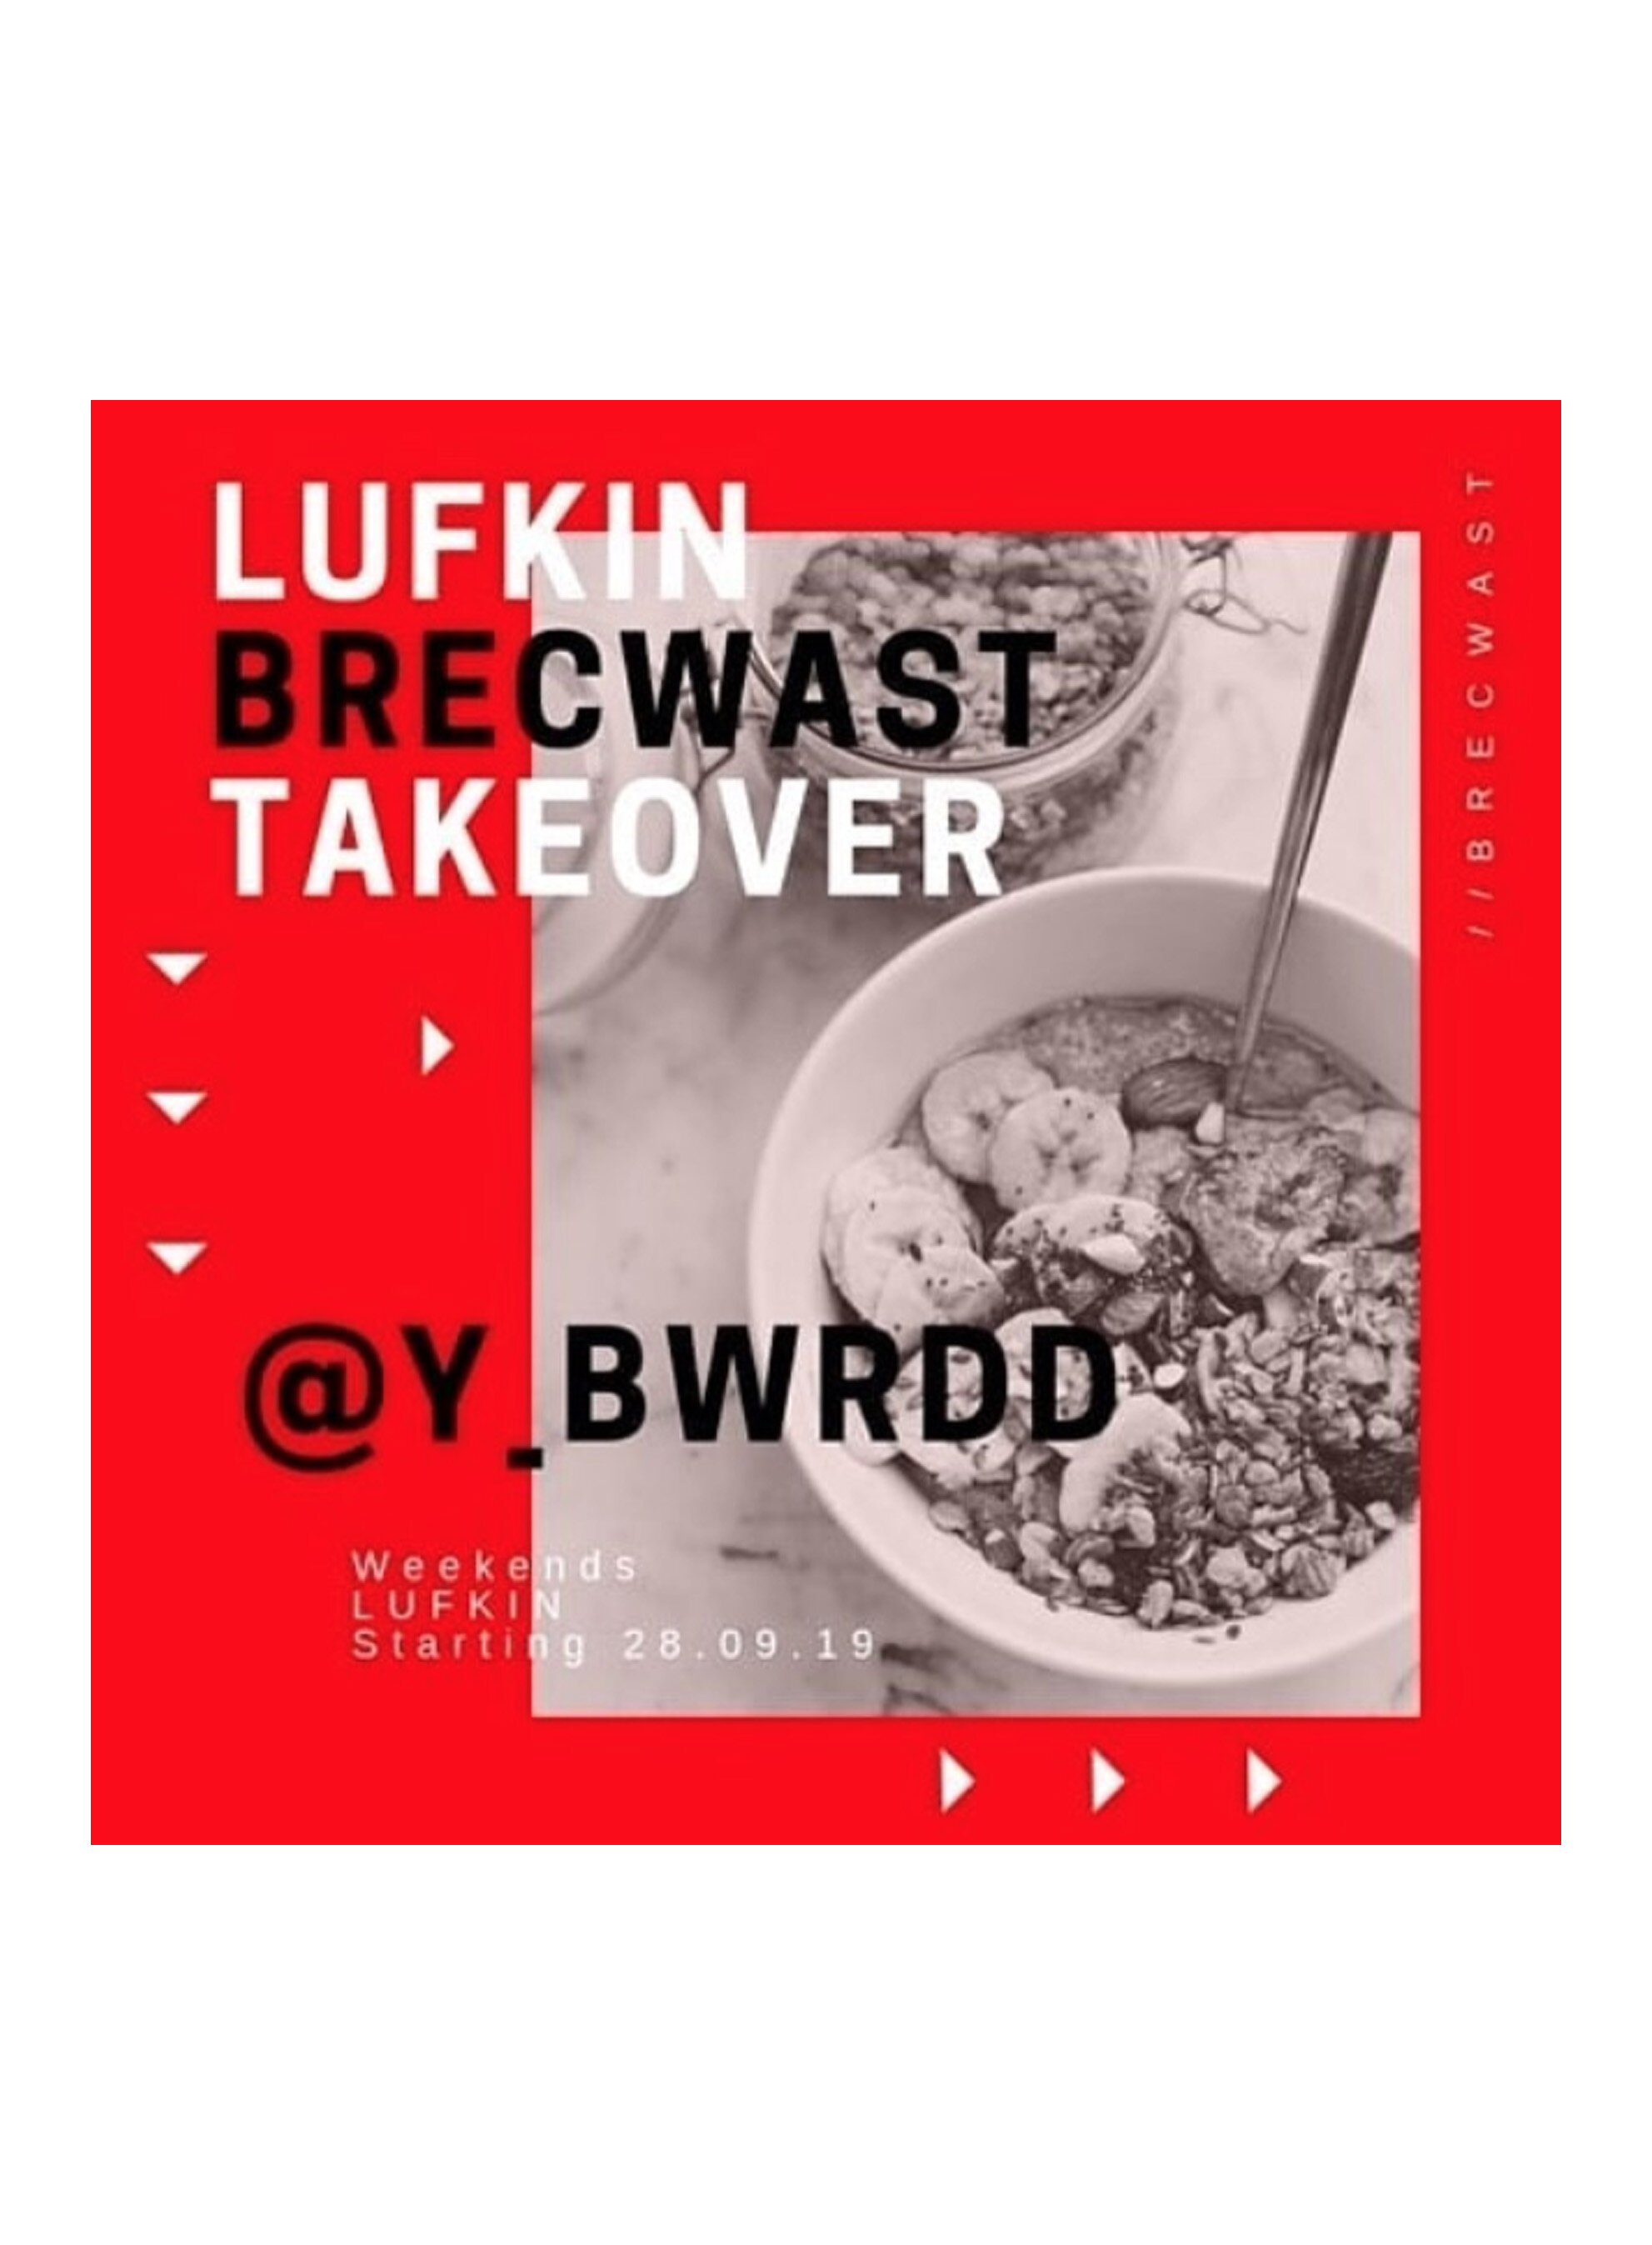 BRUNCH TAKEOVERSaturday & Sundays 28th Sept - 20th Oct - Y Bwrdd